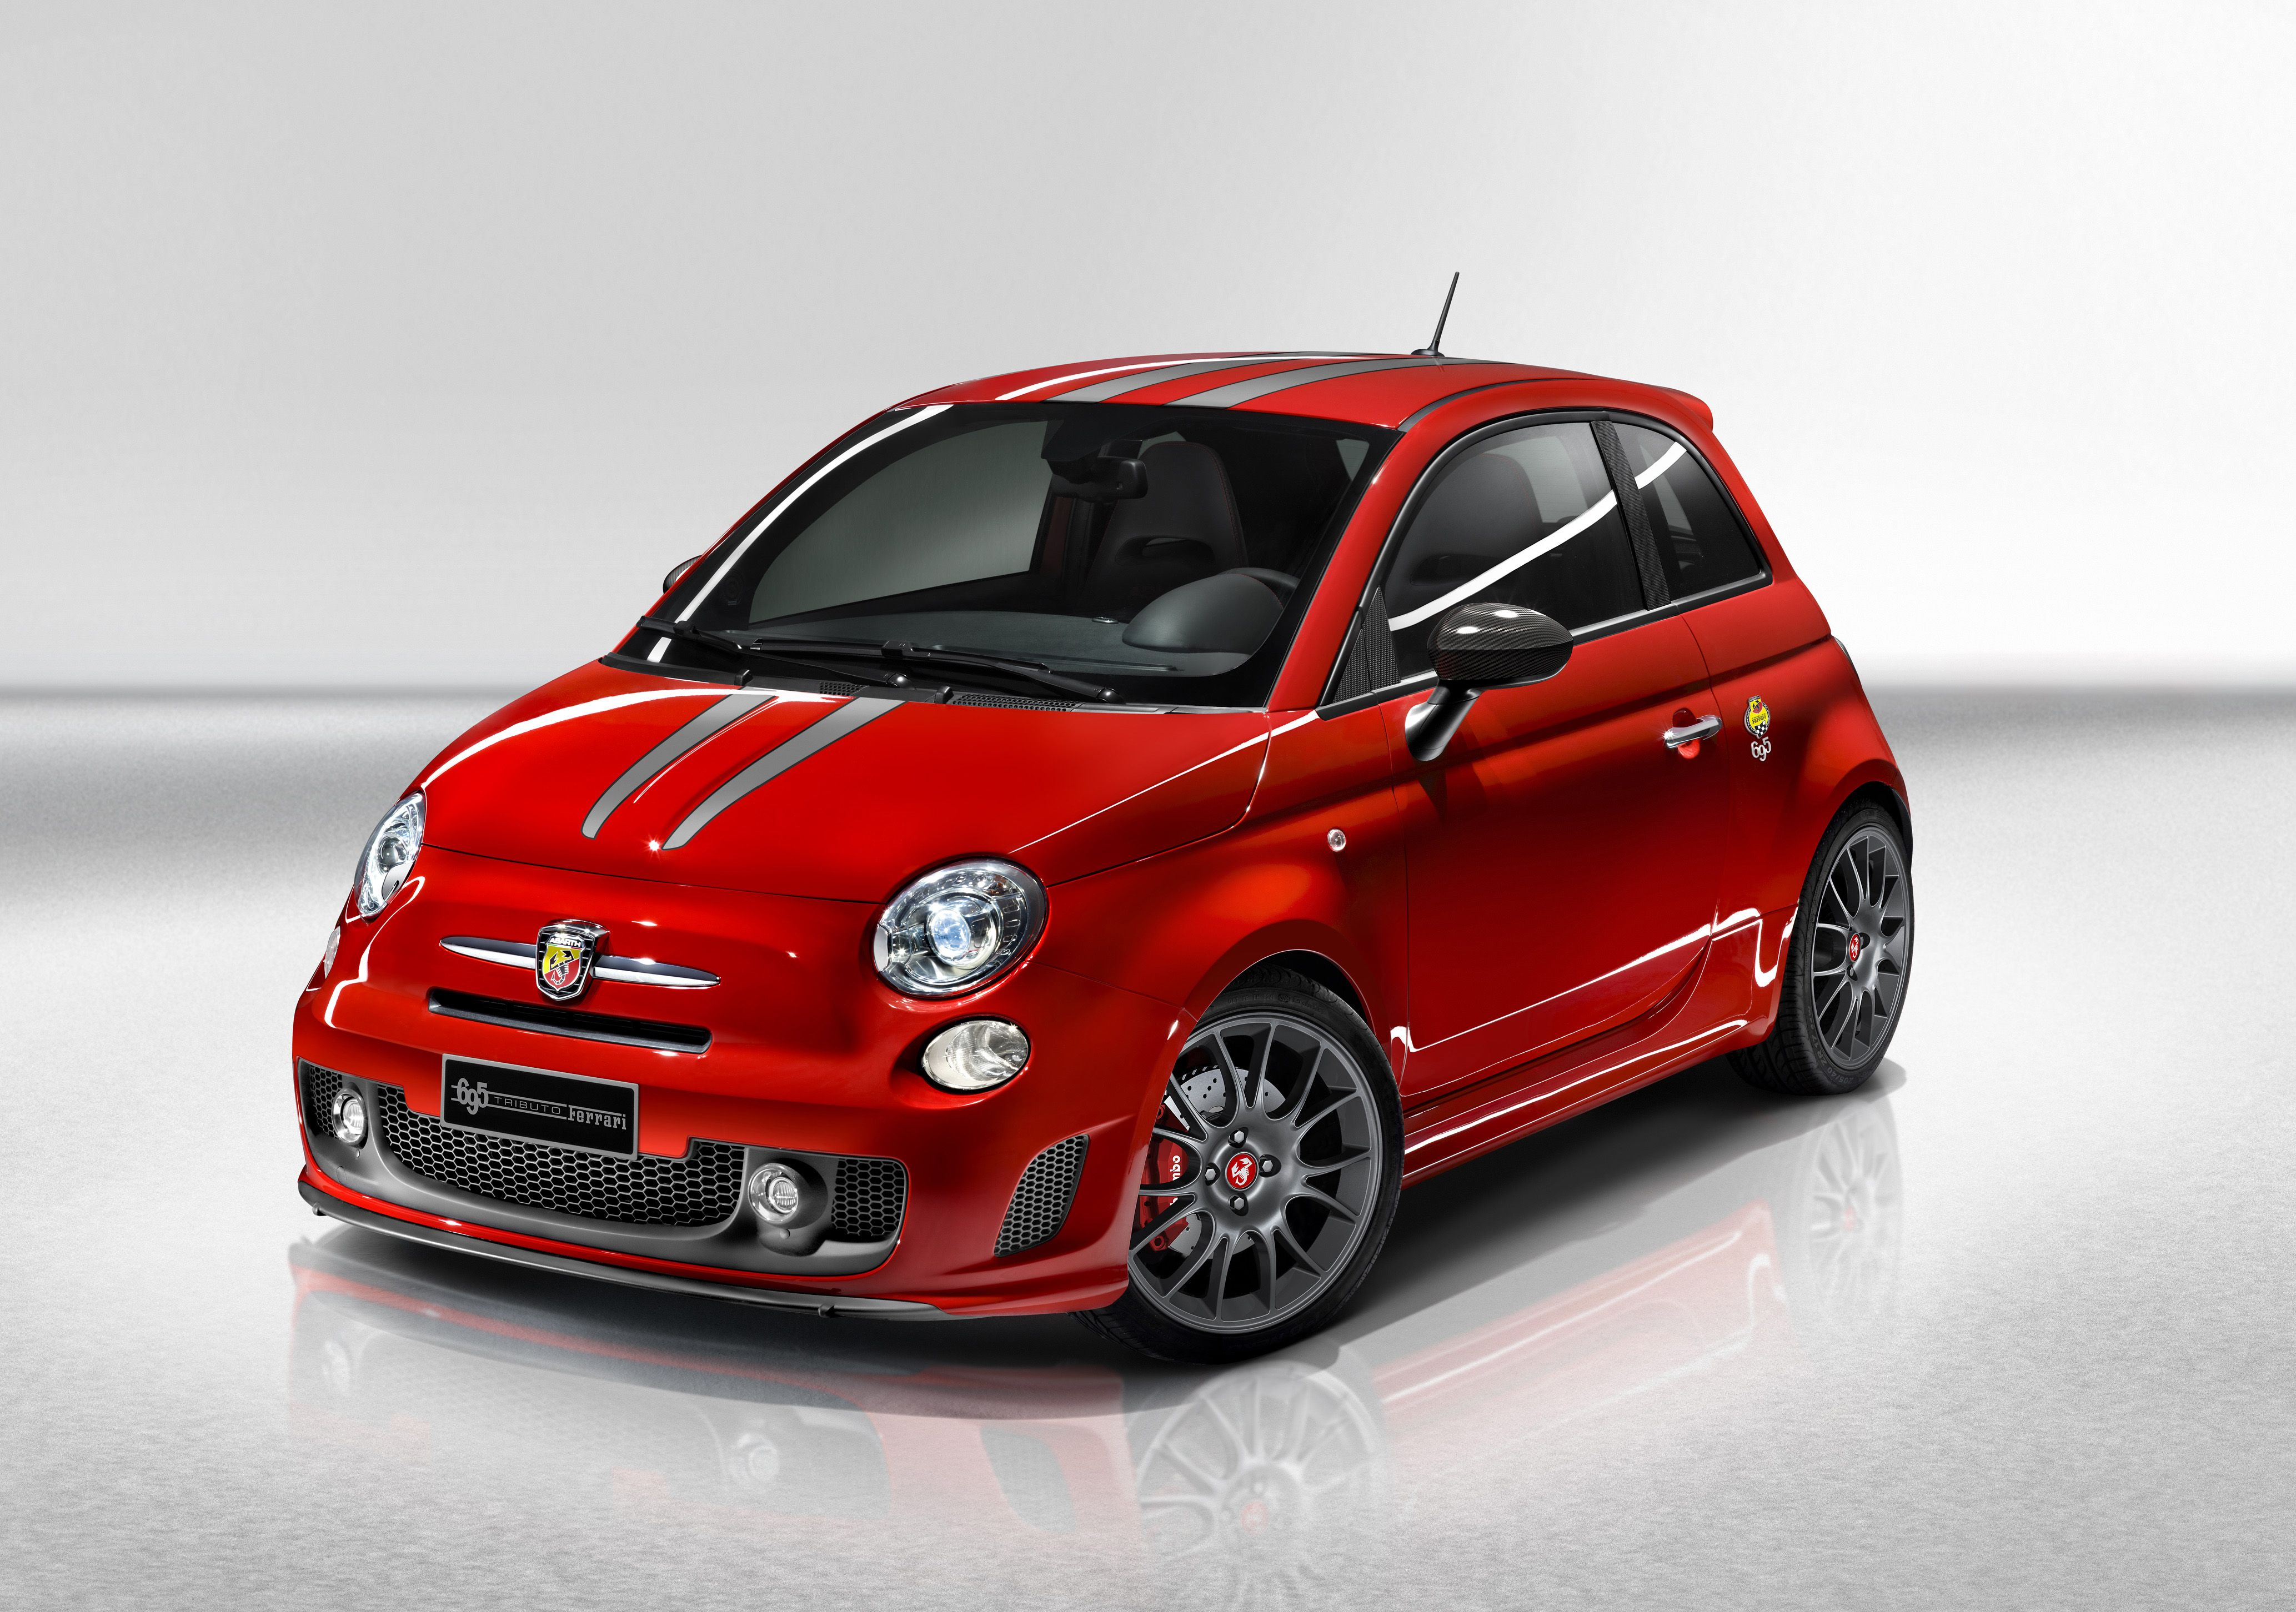 Abarth Special Edition 695 Tributo Ferrari